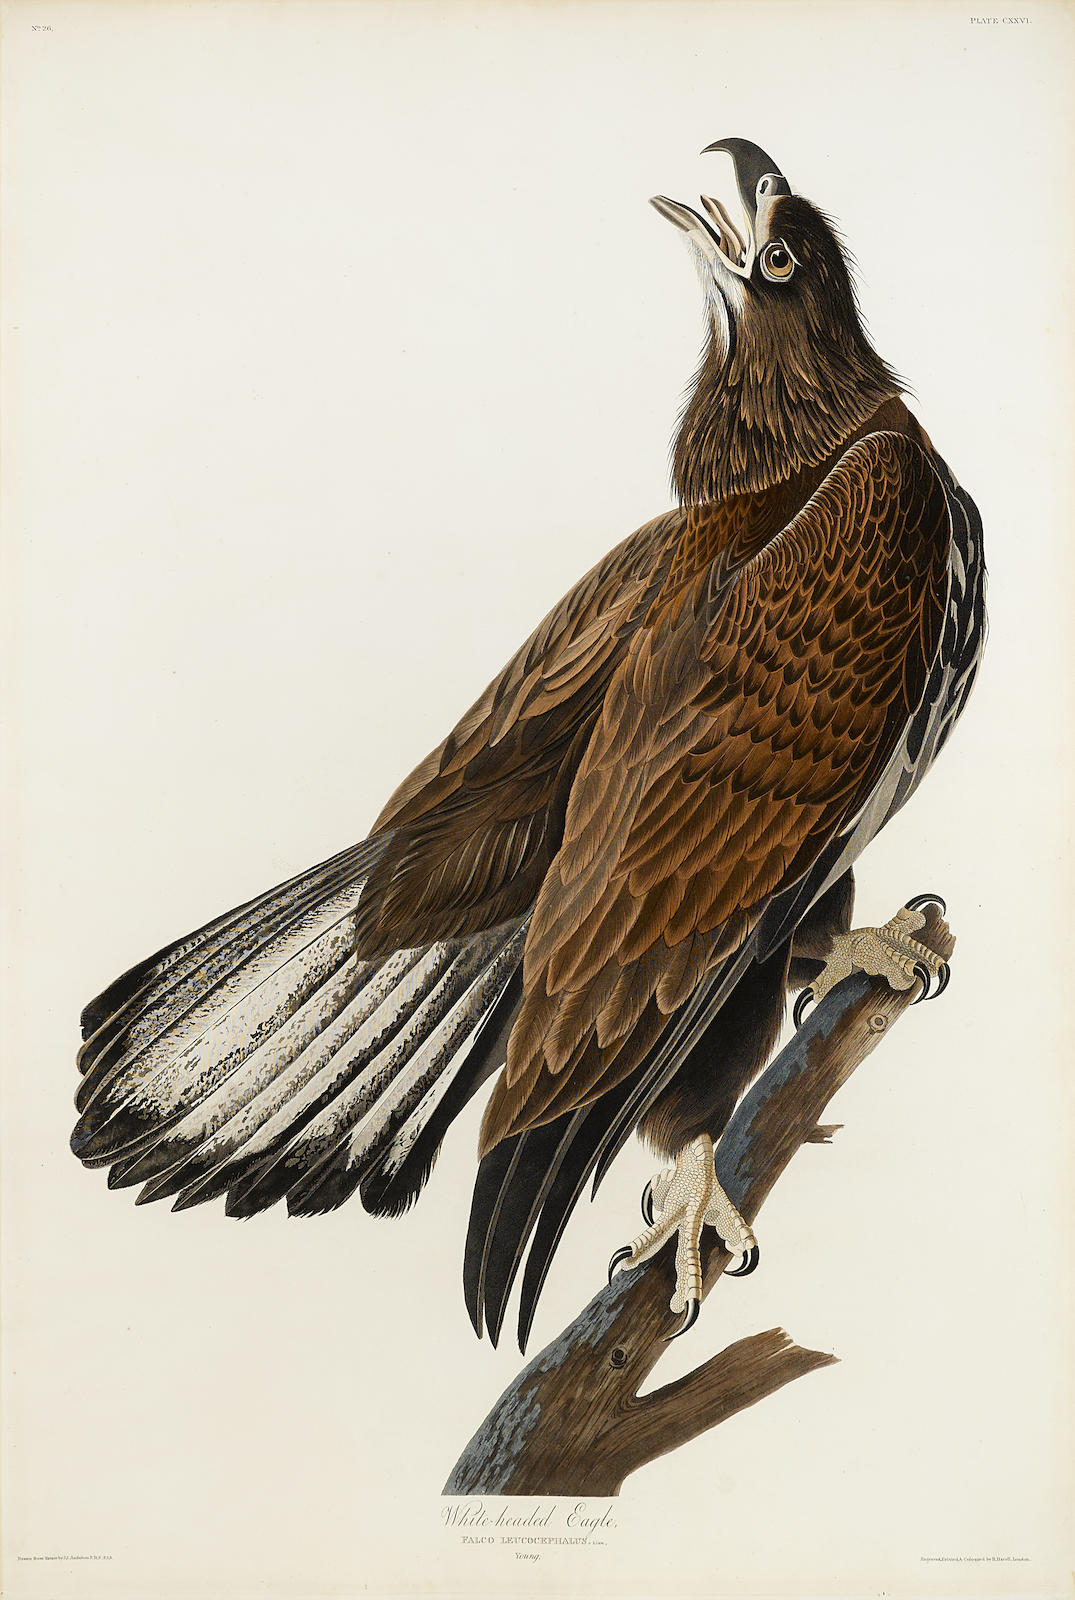 John James Audubon-After John James Audubon - White-headed Eagle (Pl. CXXVI)-1832